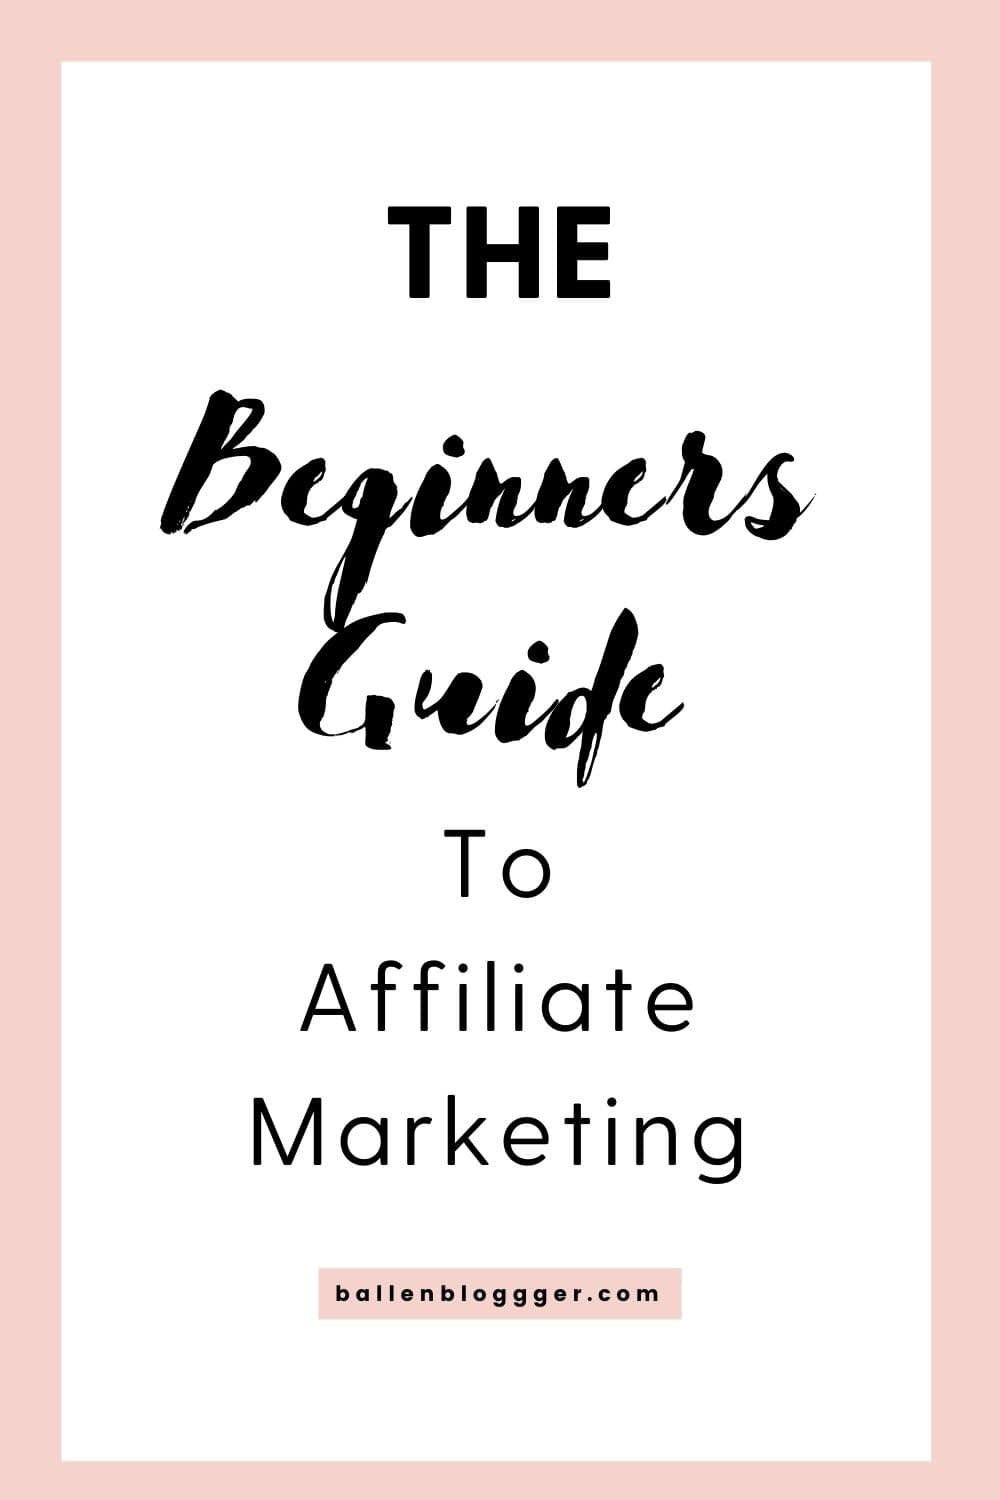 Learn affiliate marketing with the beginners guide to affiliate marketing.